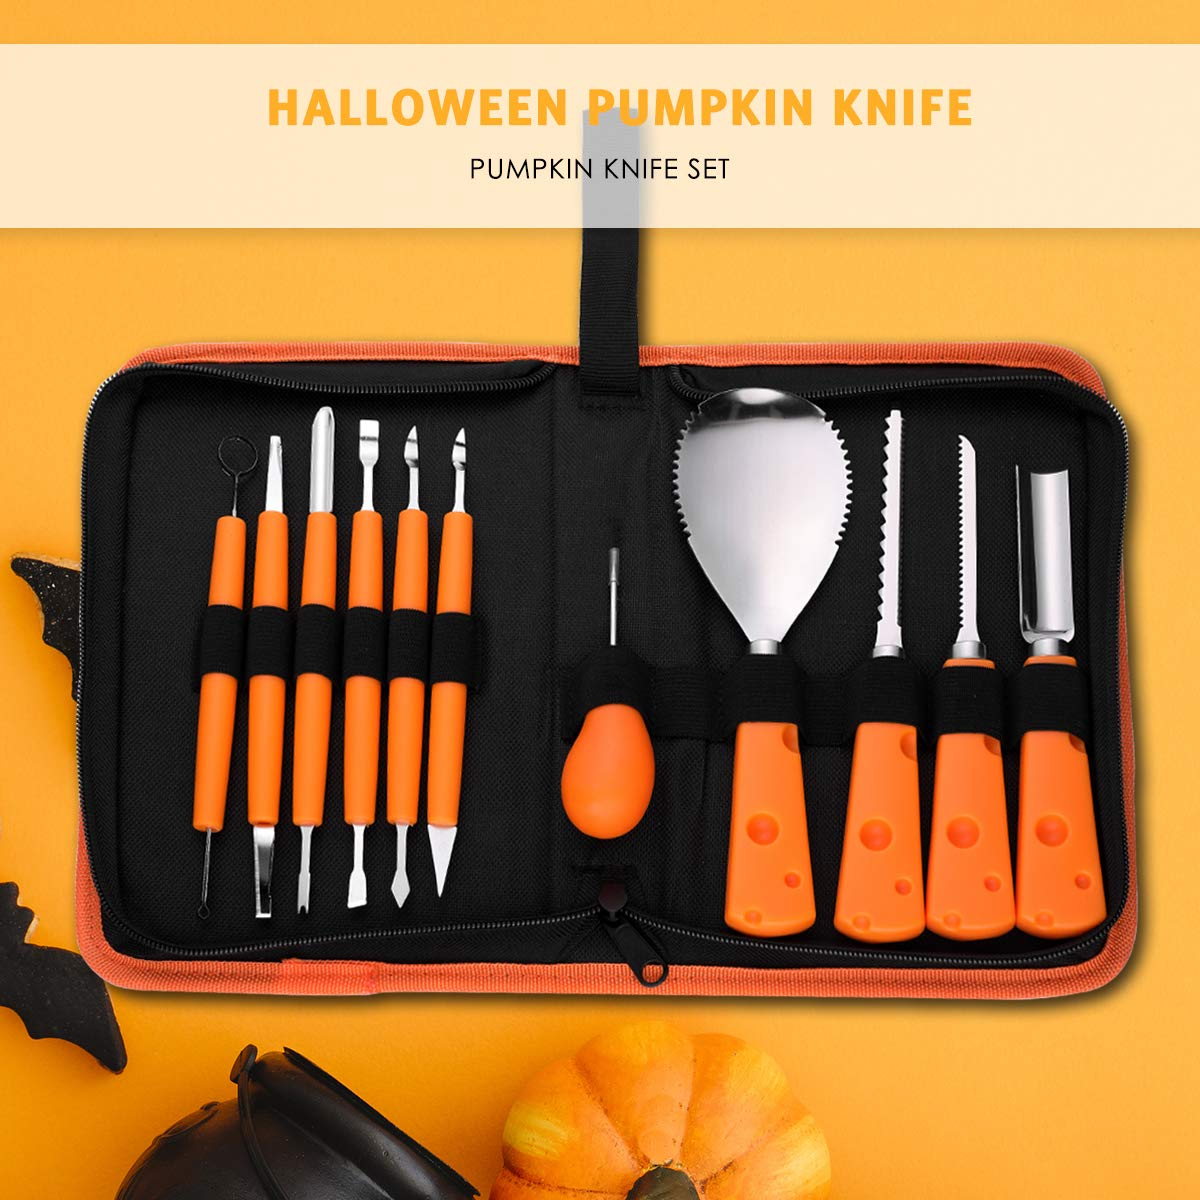 Pumpkin Carving Kit 11 Piece Professional Halloween Pumpkin Carving Tools Carve Sculpt Halloween Jack-O-Lanterns Heavy Duty Stainless Steel Tools for Halloween Decoration by MOAOO